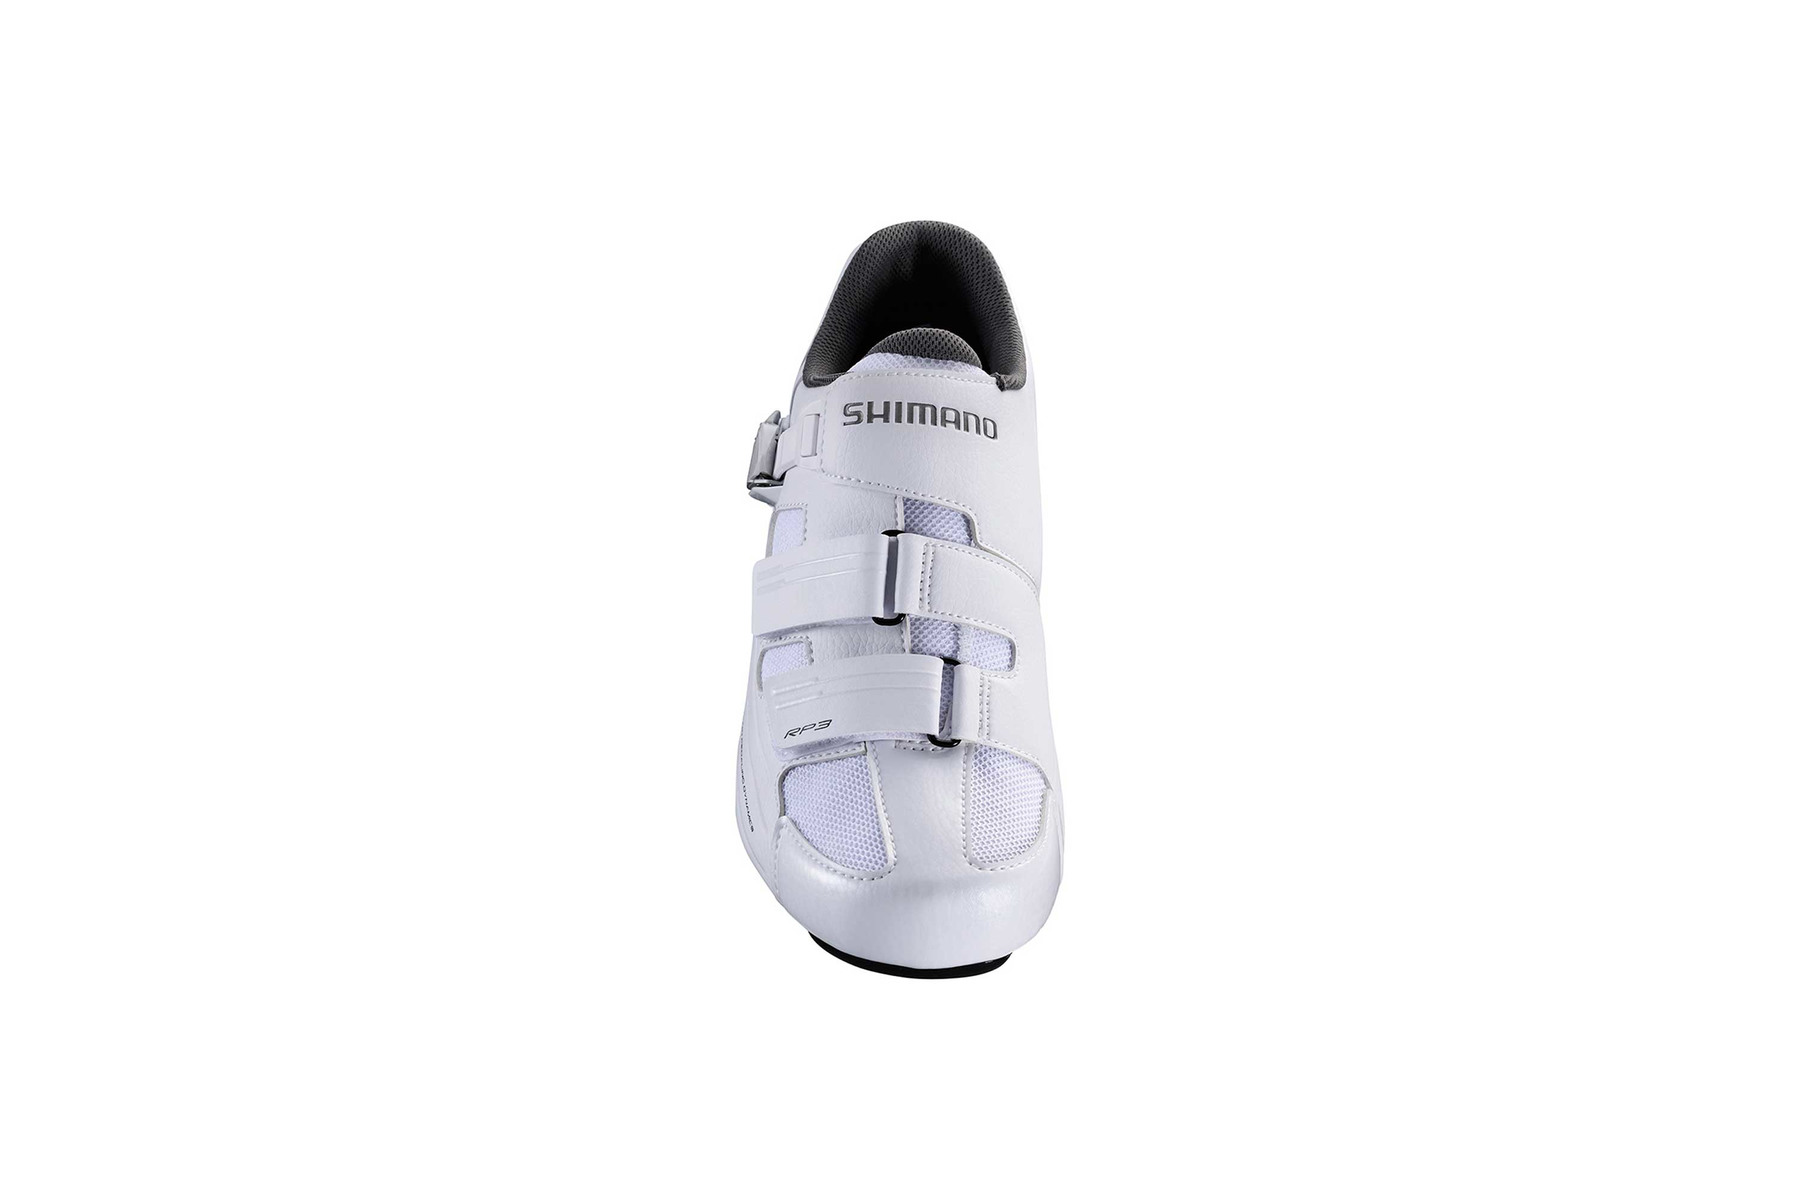 SH-RP3 chaussures de route extra larges 24jIfW